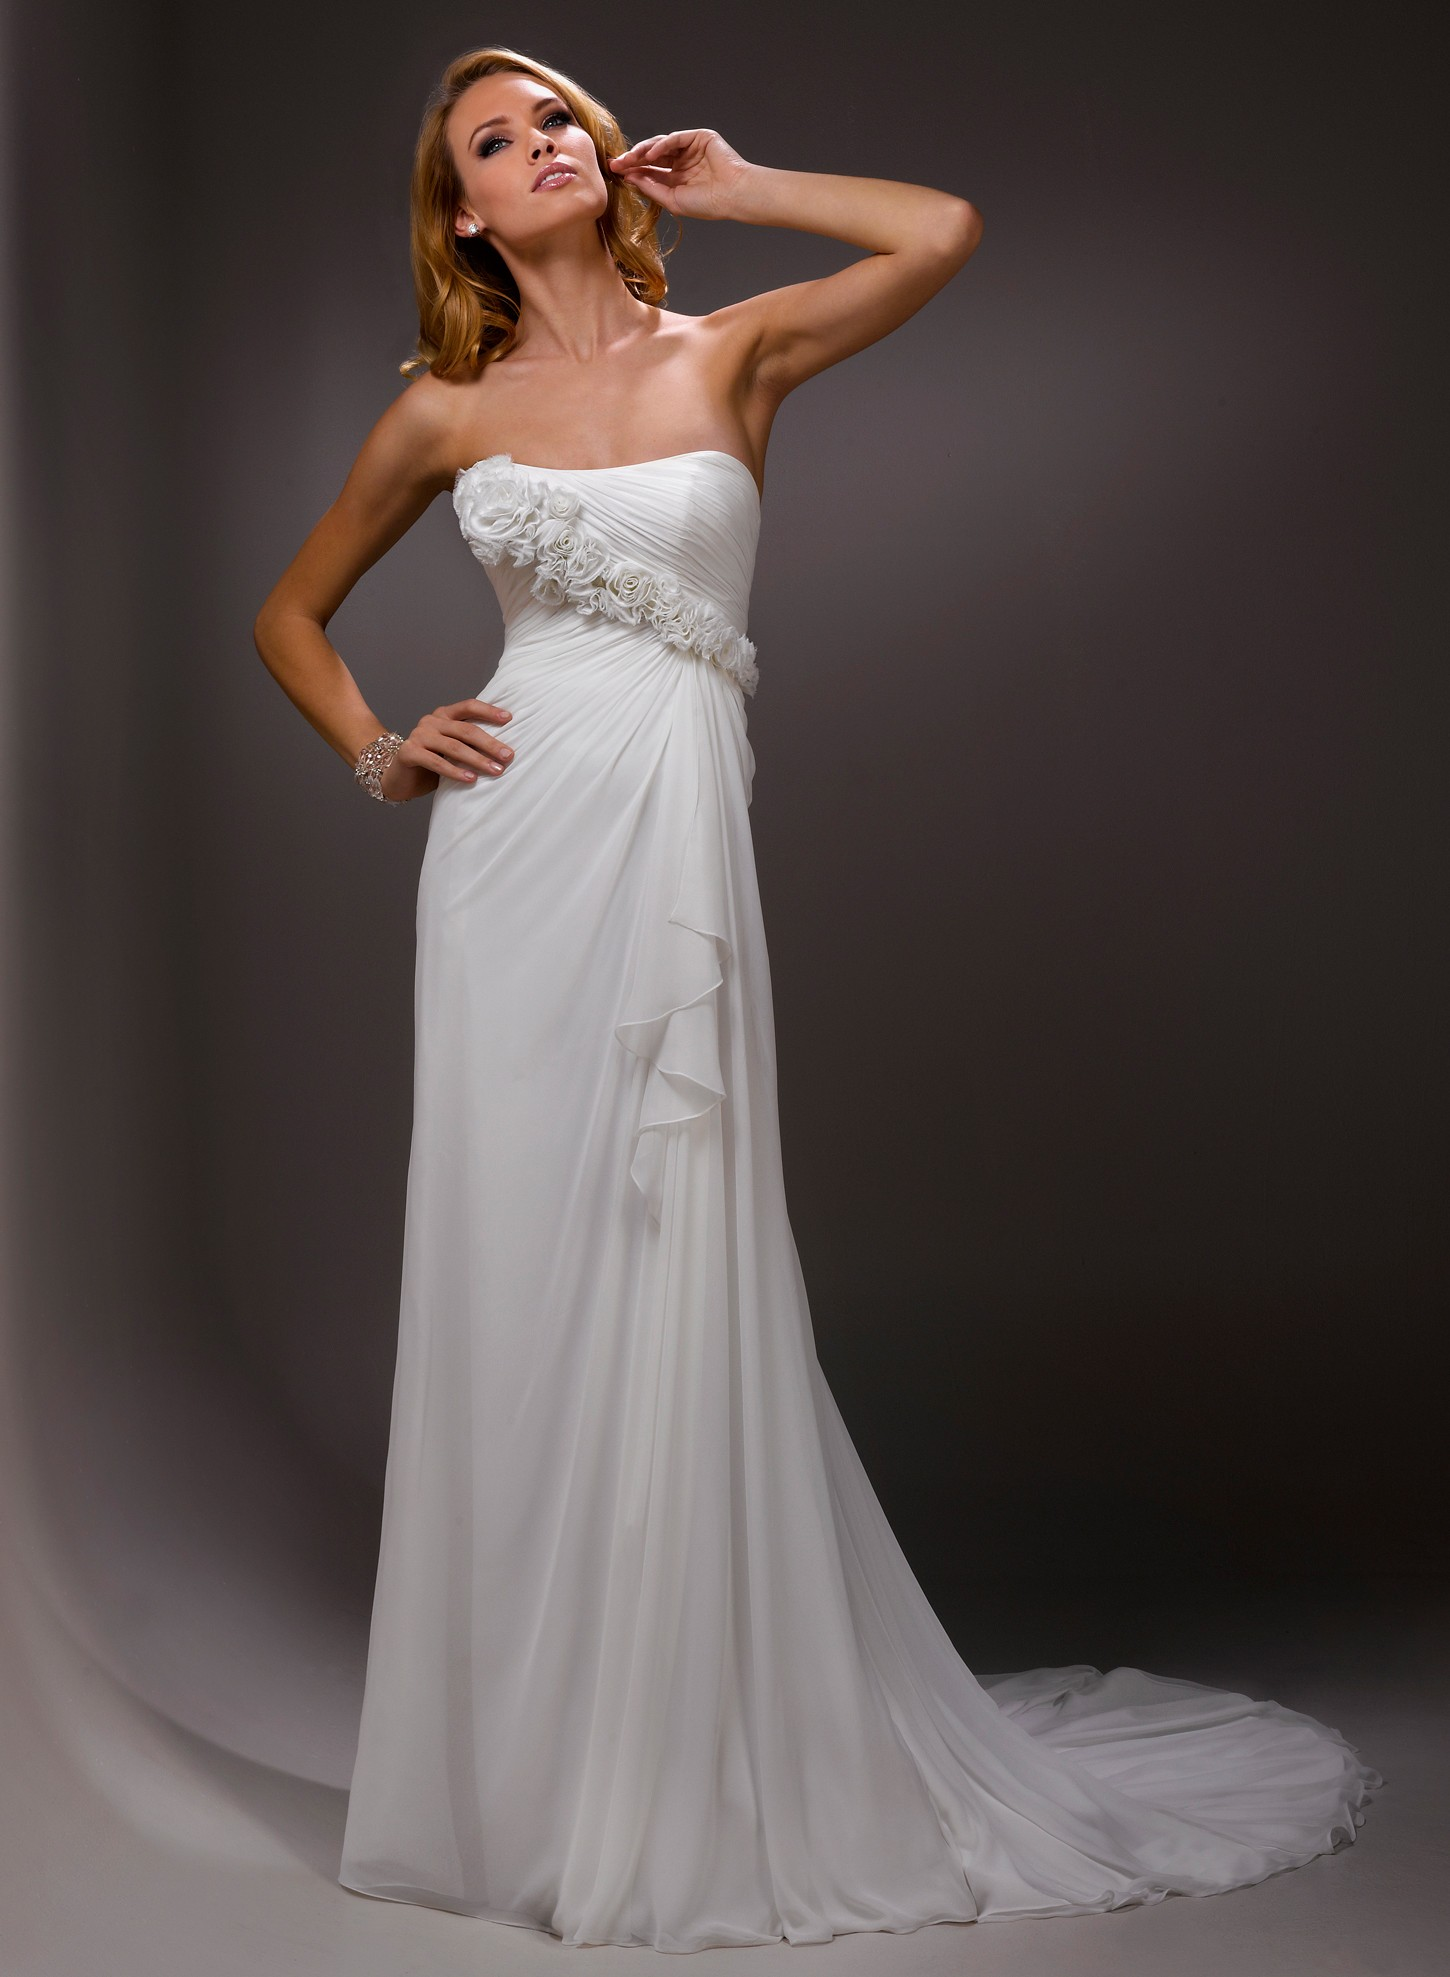 Sheath wedding dresses ultimate choice for the wedding for Cheap sheath wedding dresses